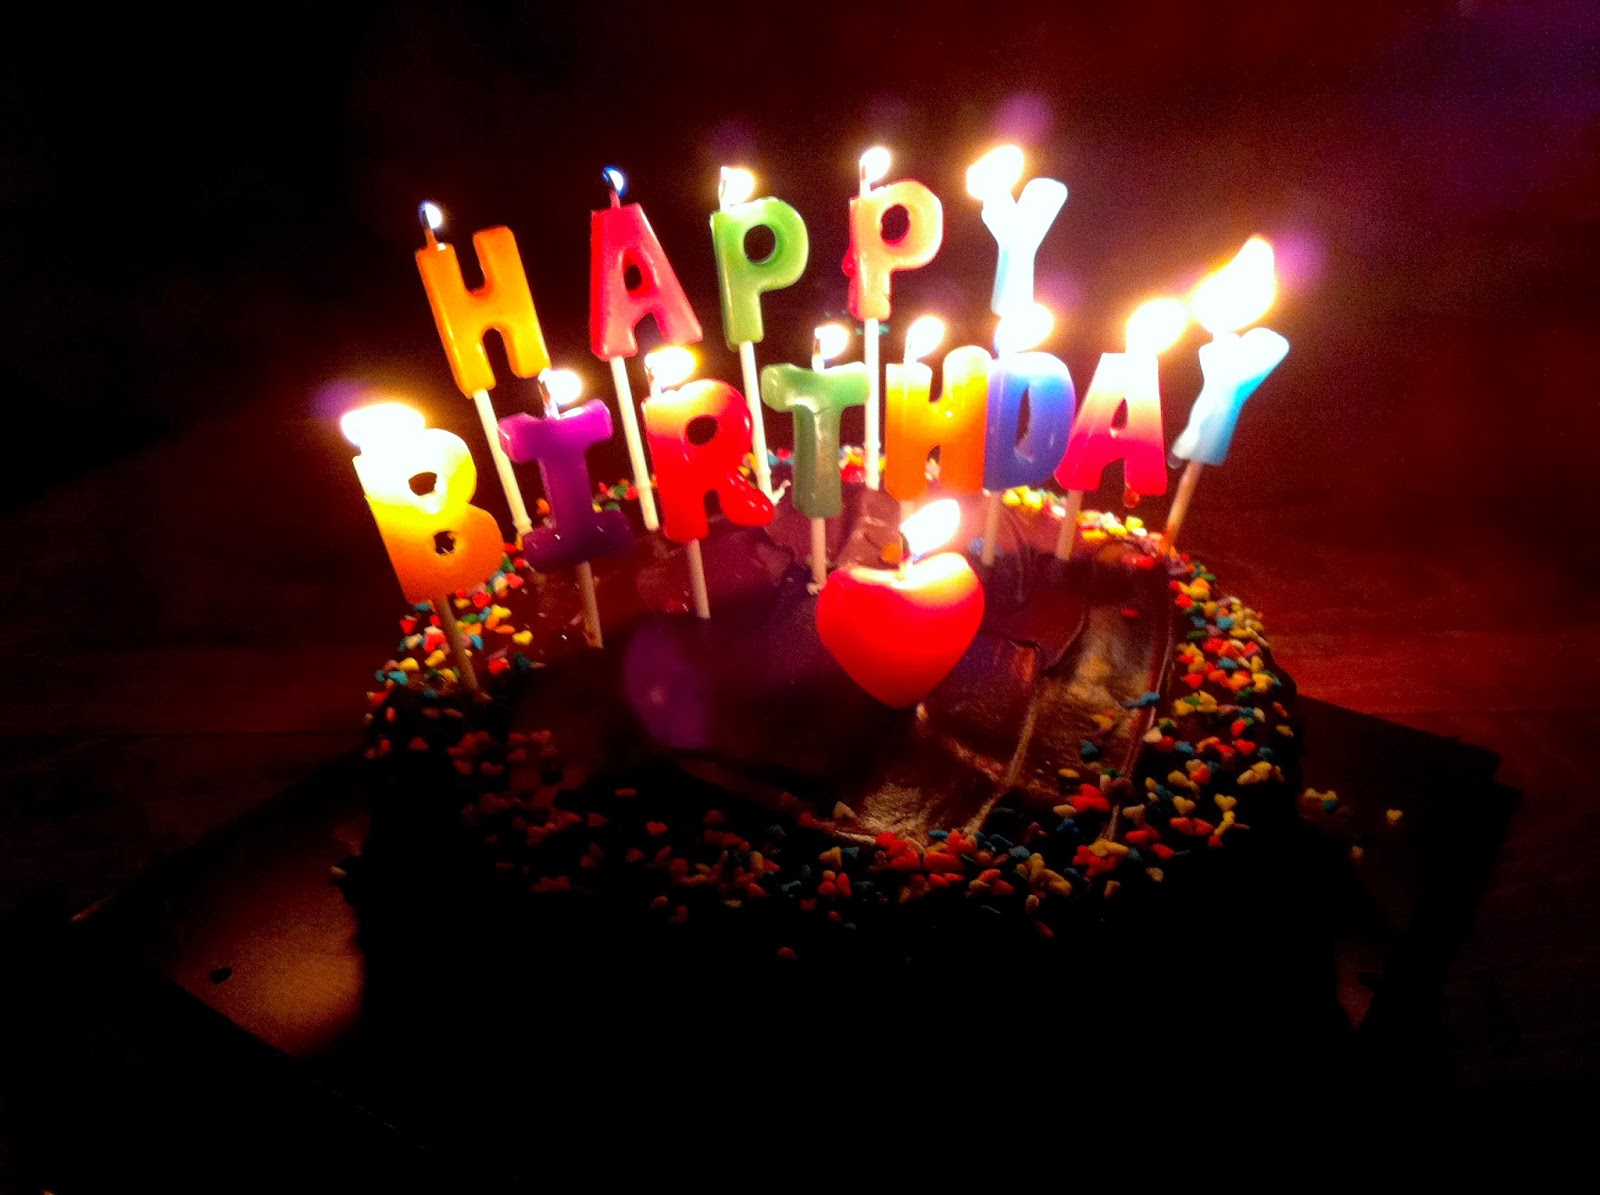 picture of birthday cake and candles ; Birthday-cake-candle-ideas